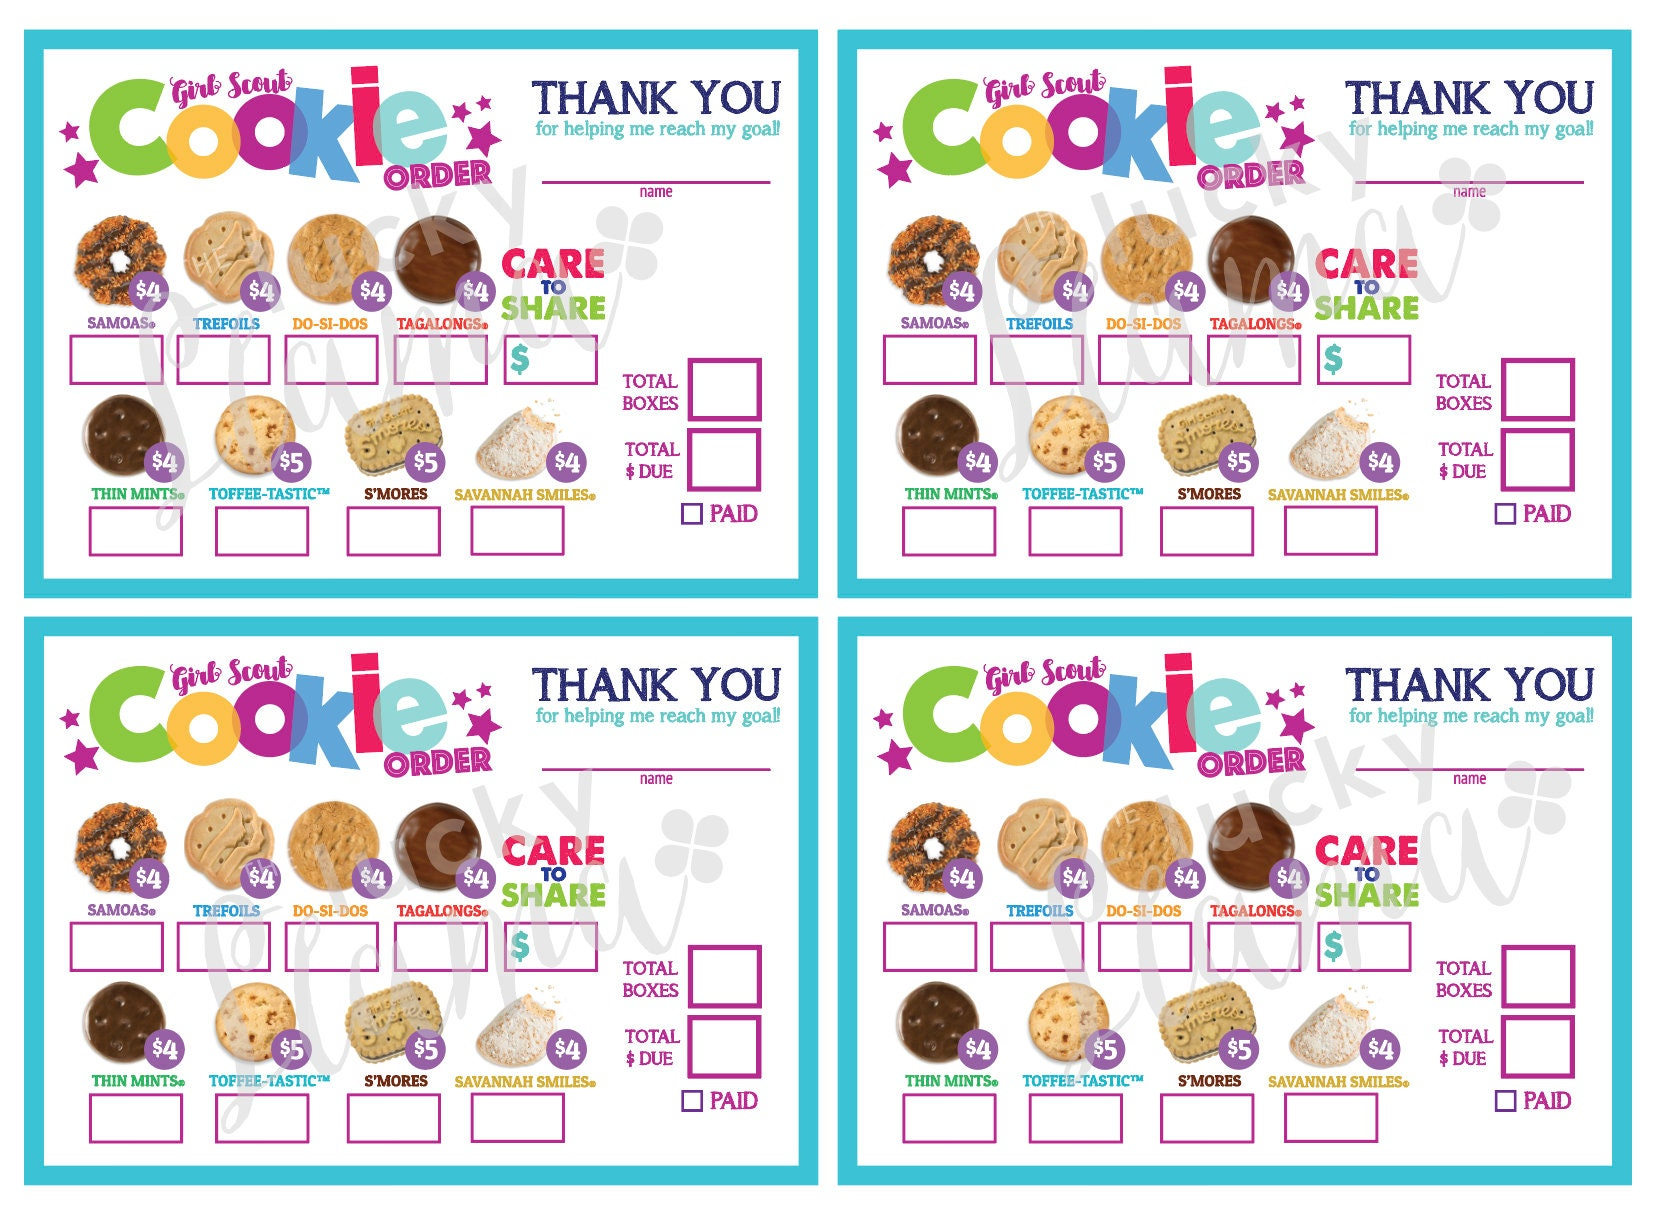 It's just a photo of Effortless Girl Scout Cookie Order Form Printable